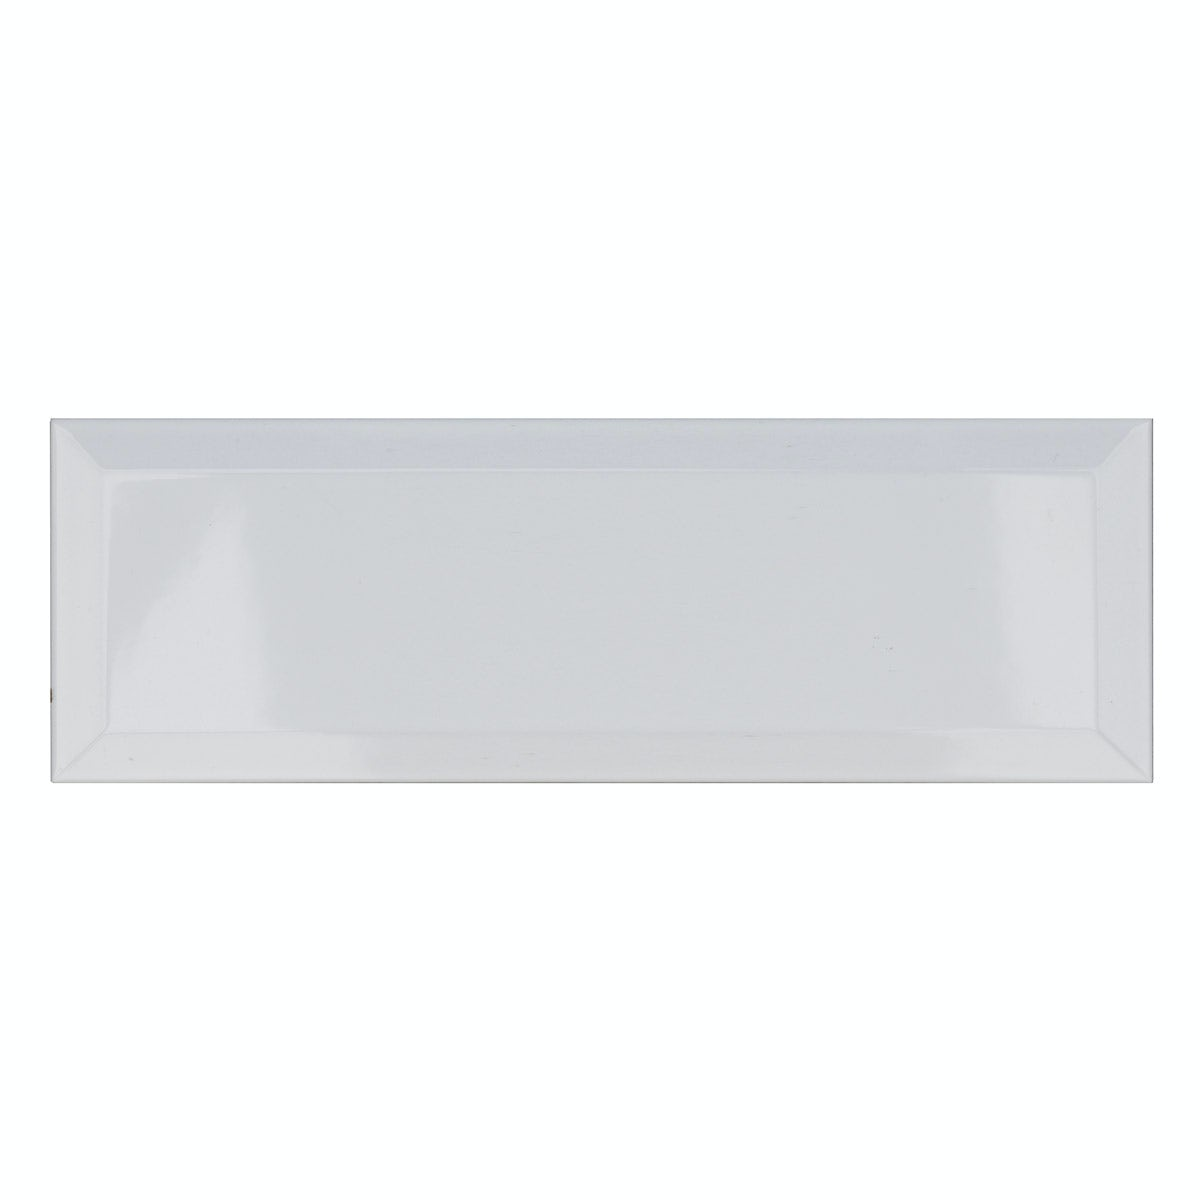 Maxi Metro Subway White Bevelled Gloss Wall Tile 100mm X